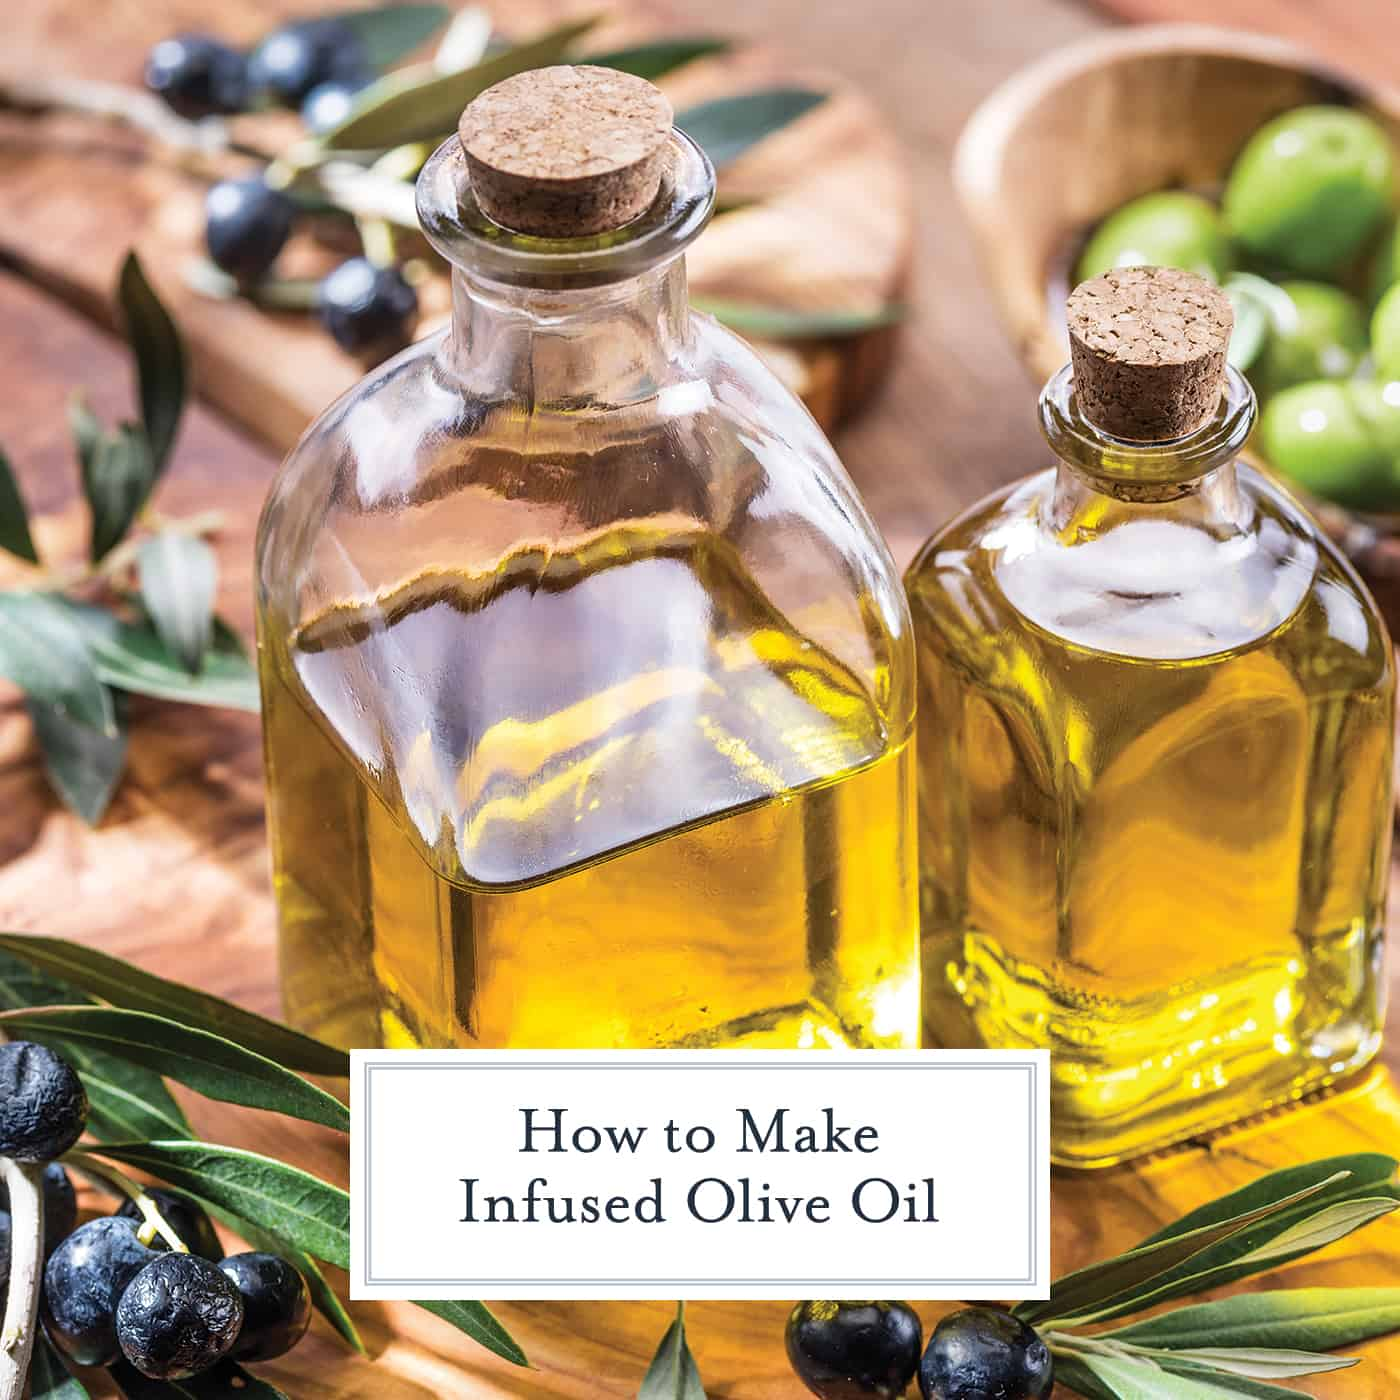 Wonder how to make infused olive oil? Here are easy steps for homemade infused olive oil! Perfect for dipping bread or giving as a homemade gift. #howtomakeinfusedoliveoil #infusedoliveoil www.savoryexperiments.com